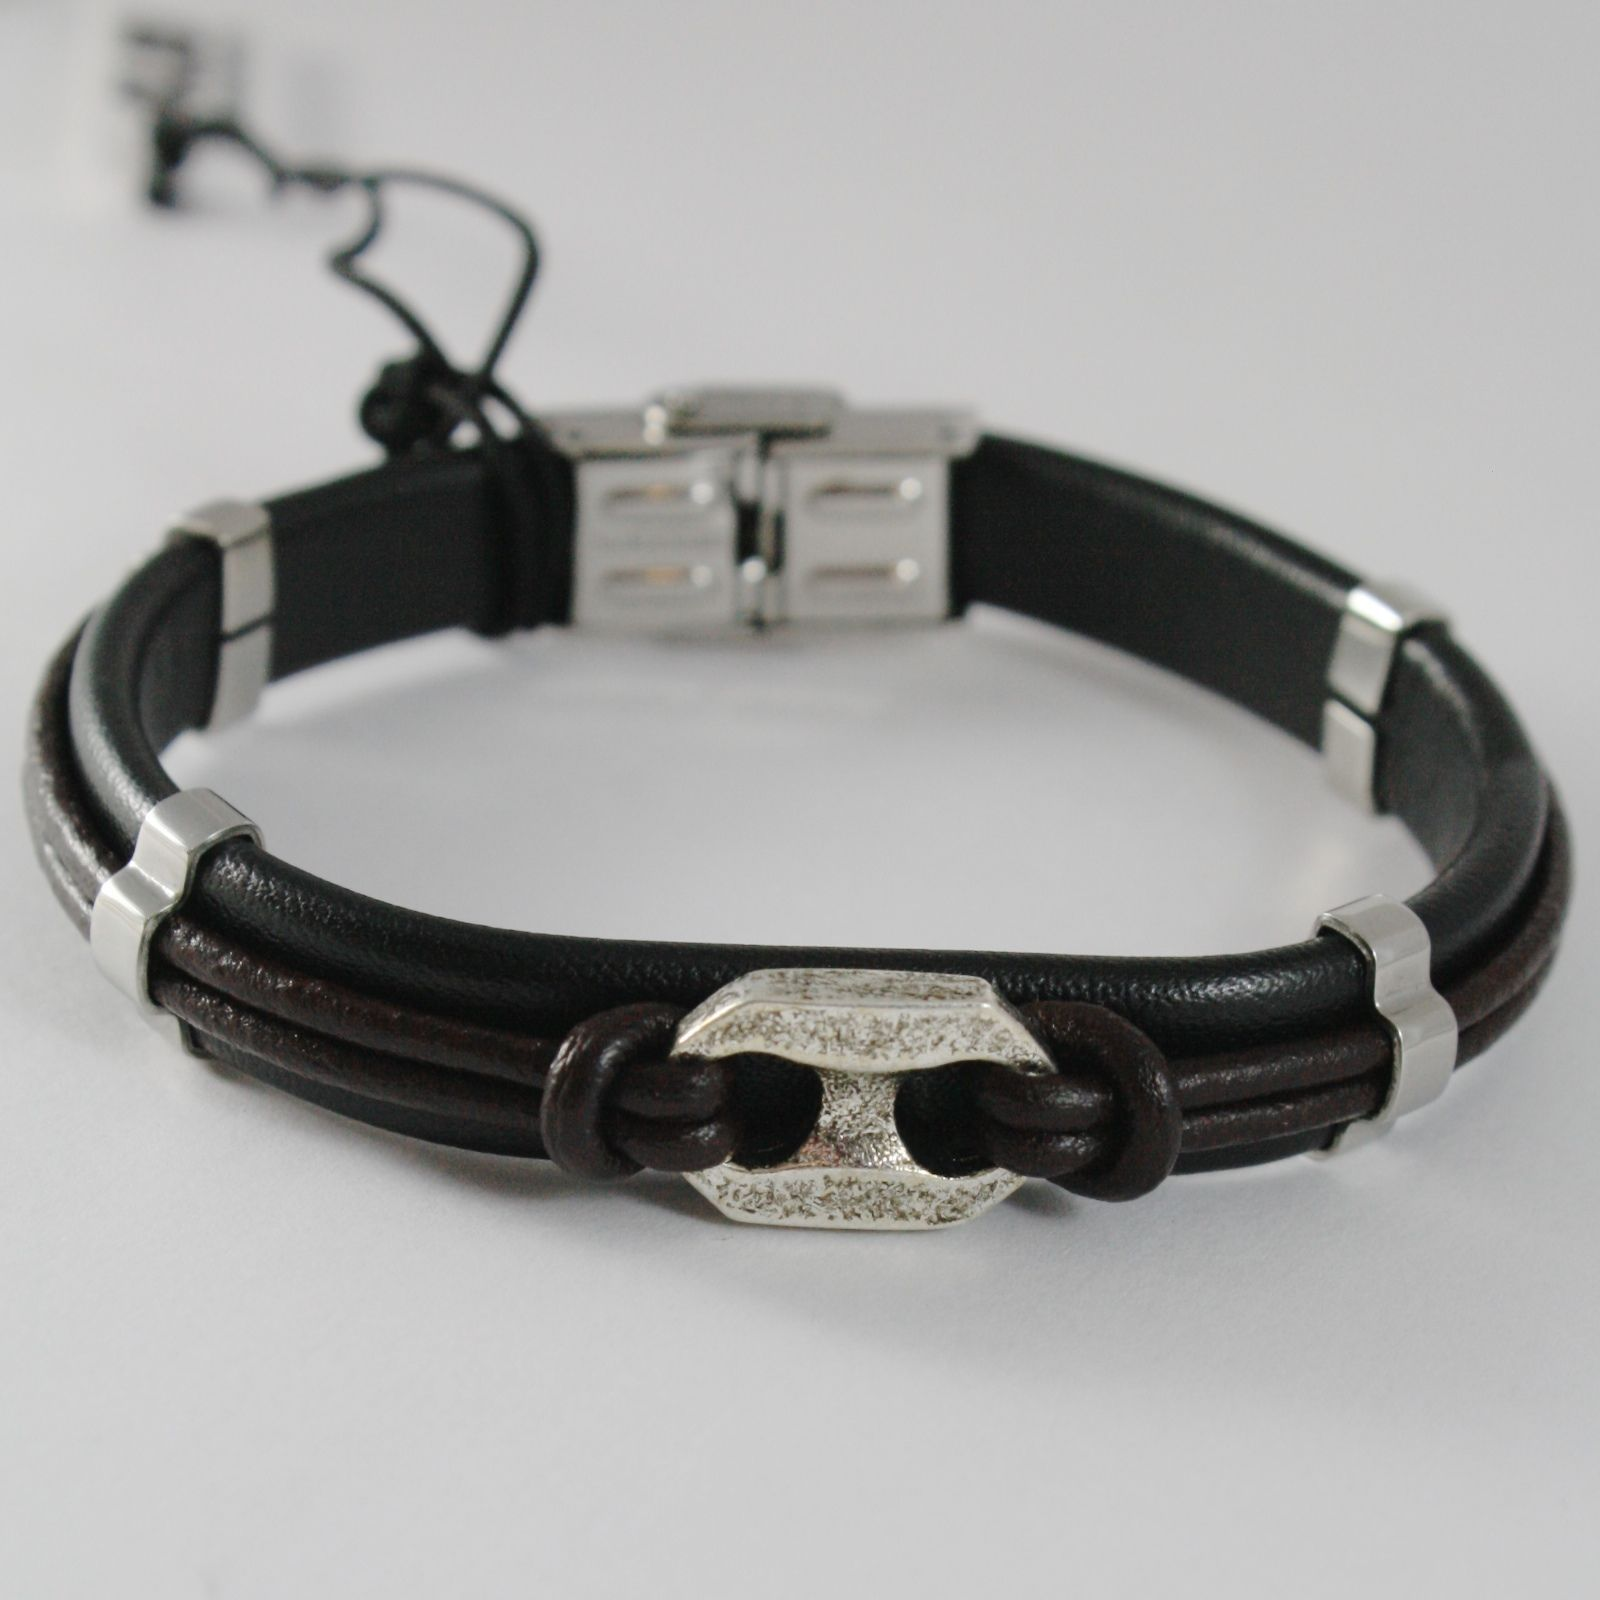 STAINLESS STEEL BOLT BRACELET WITH BROWN BLACK LEATHER, 4US BY CESARE PACIOTTI